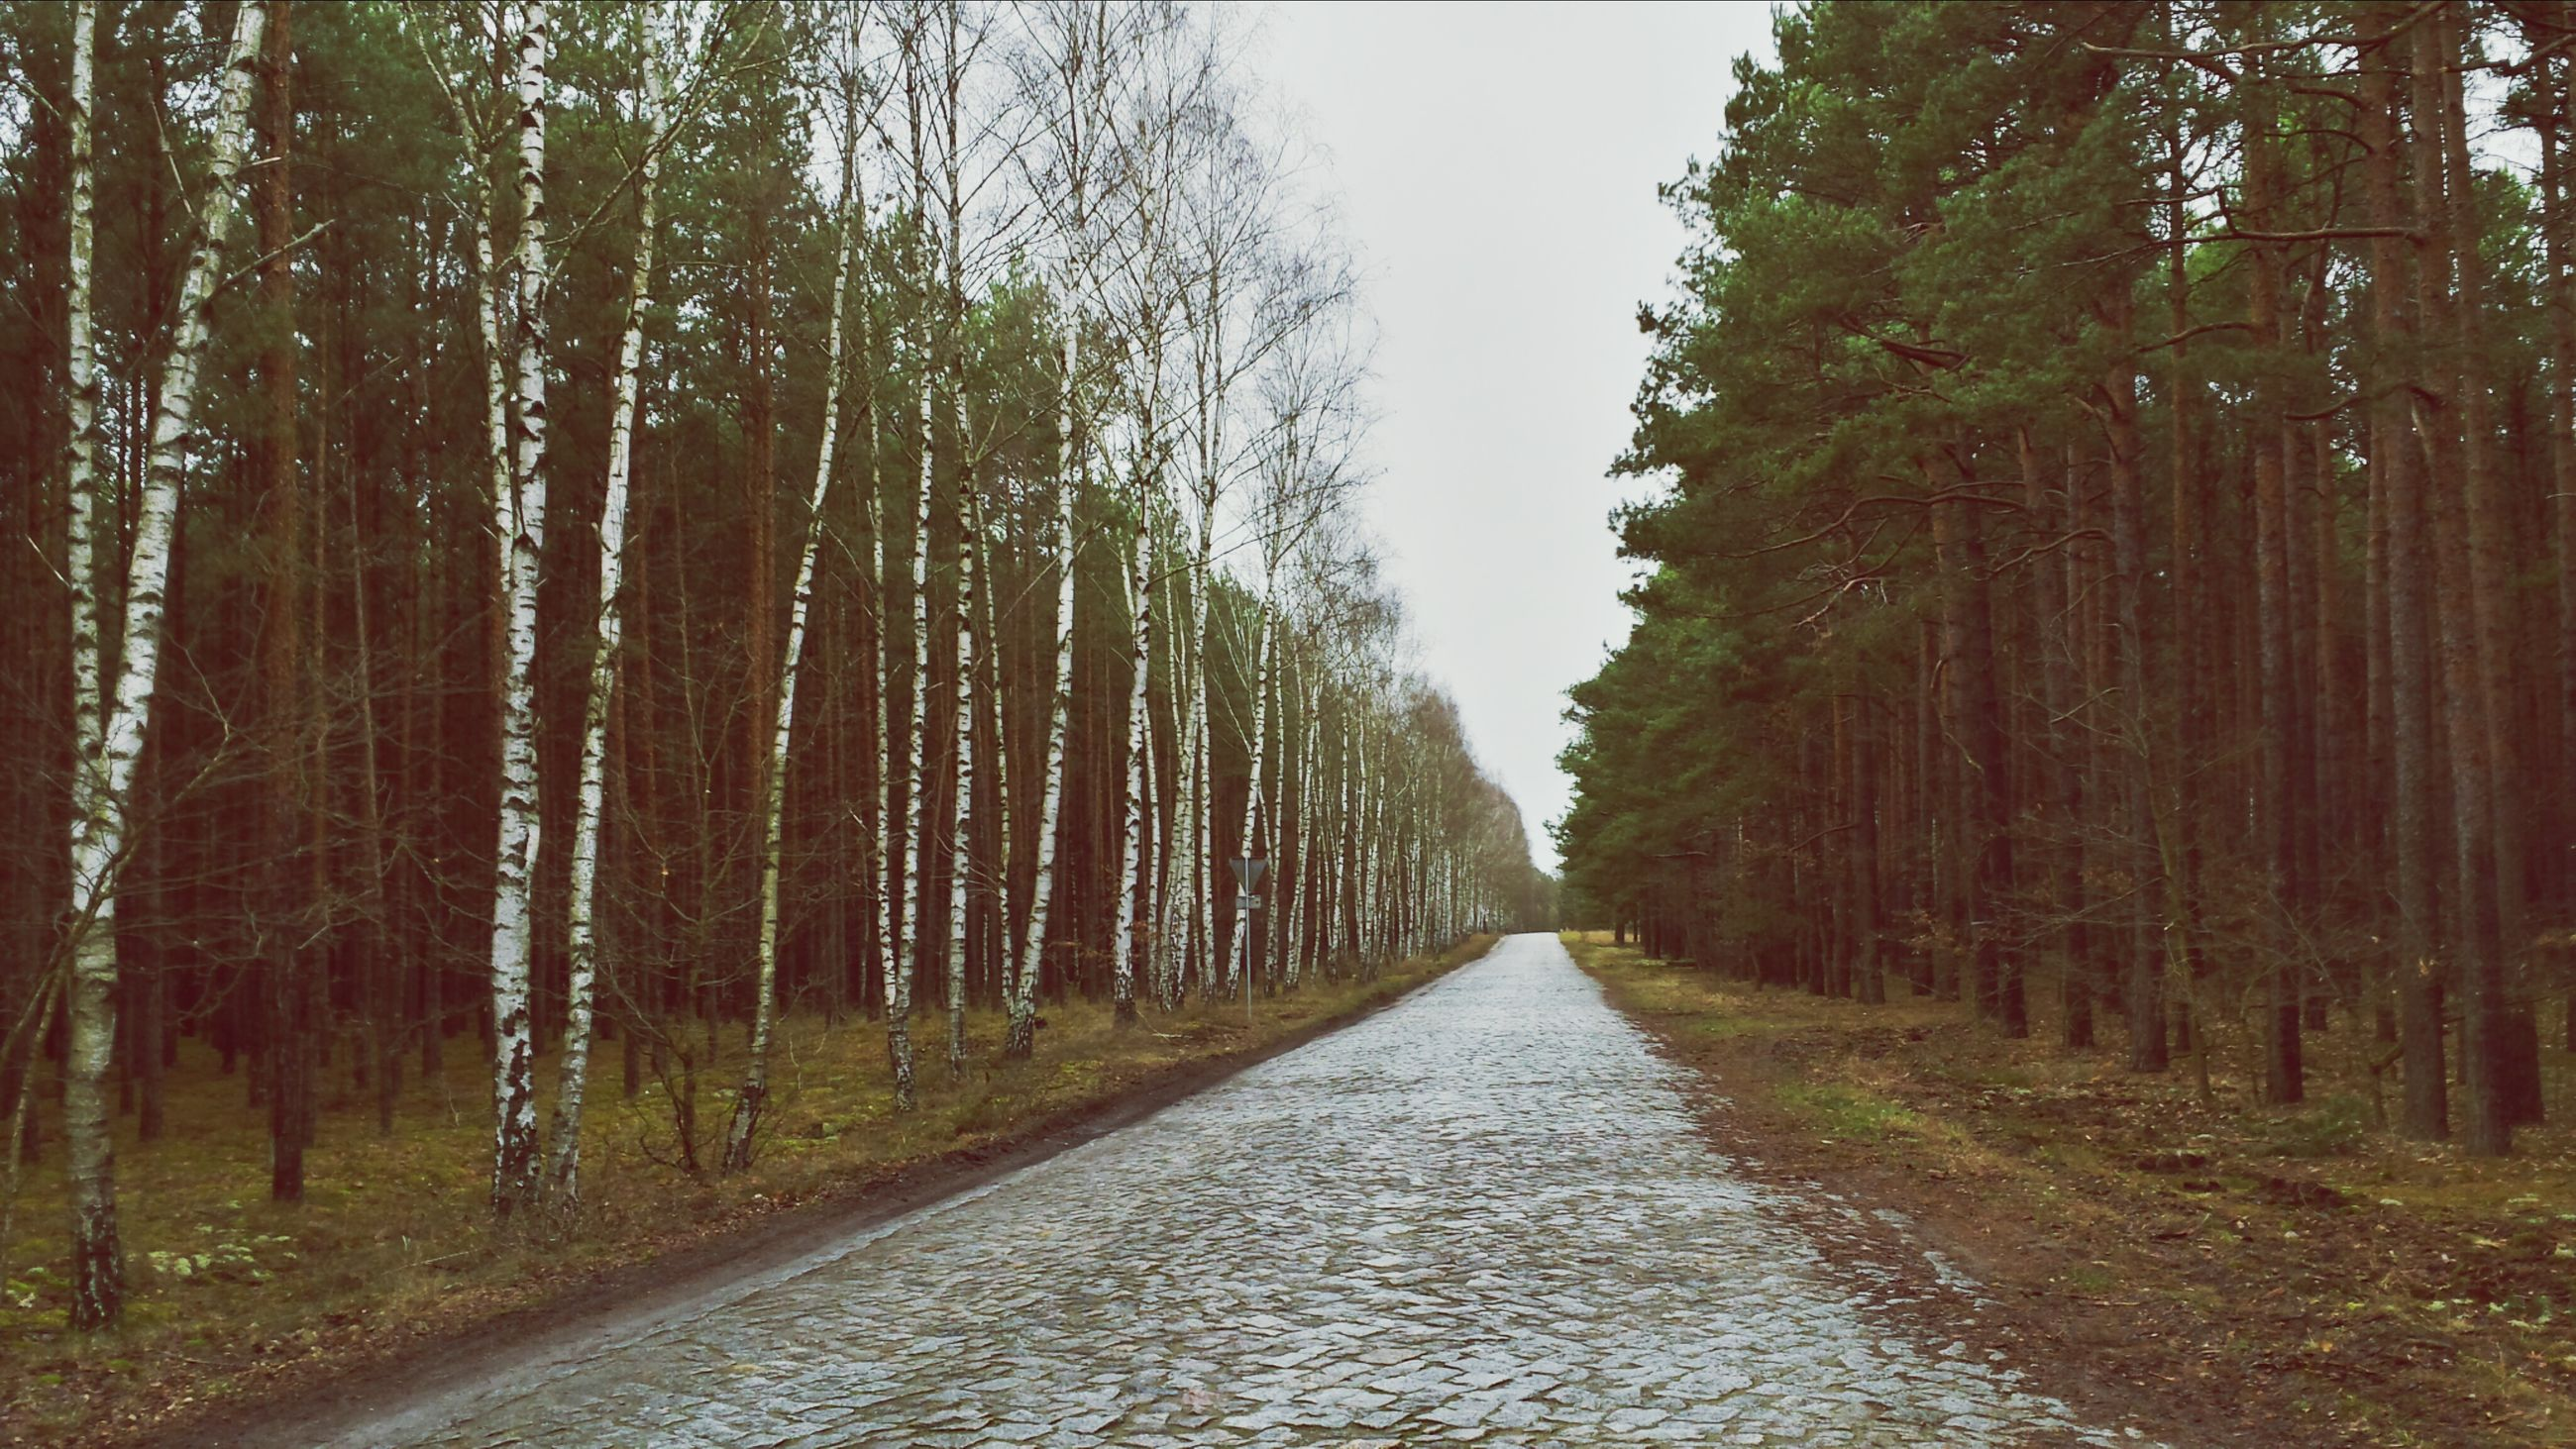 the way forward, tree, diminishing perspective, vanishing point, treelined, tranquility, tranquil scene, tree trunk, growth, nature, road, forest, beauty in nature, footpath, scenics, long, empty road, day, in a row, outdoors